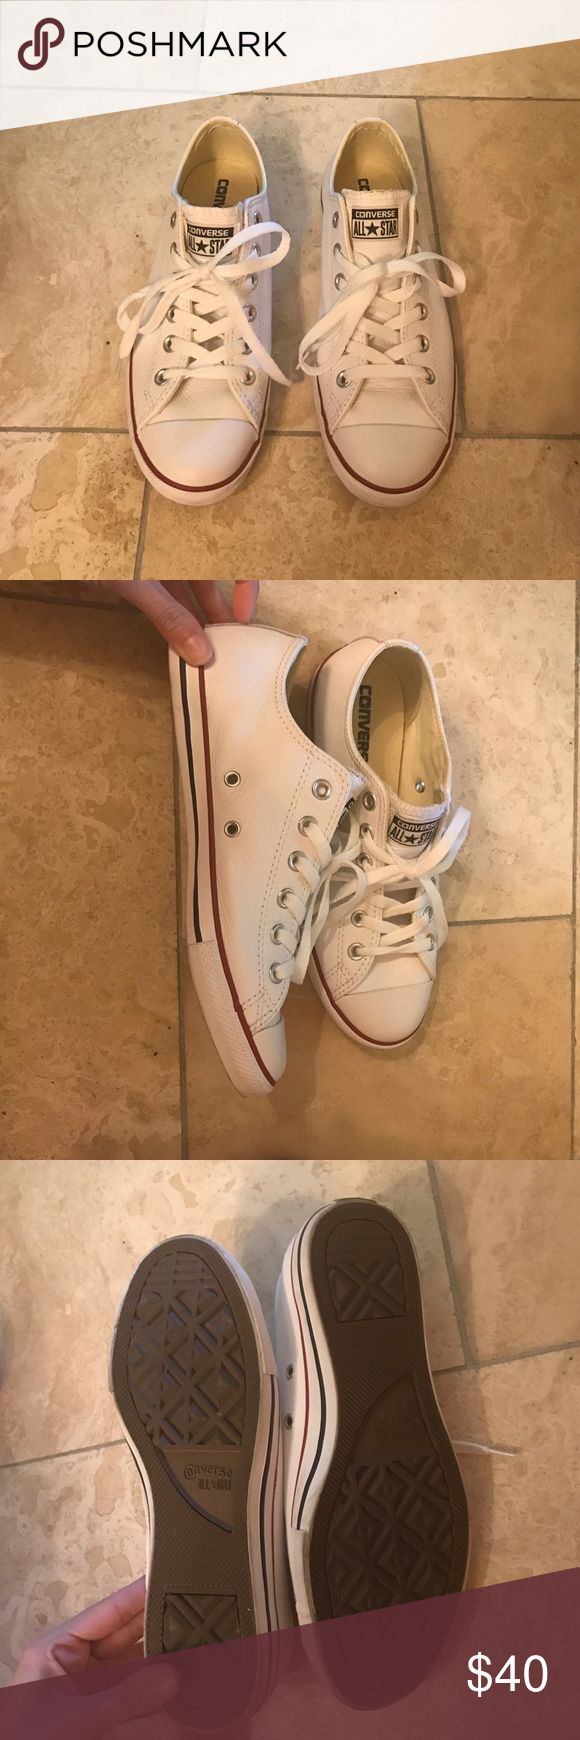 Converse Slim White size 8 Basically brand new. Worn one. In perfect condition. Slim sole, white leather. Women's size 8! Converse Shoes Sneakers